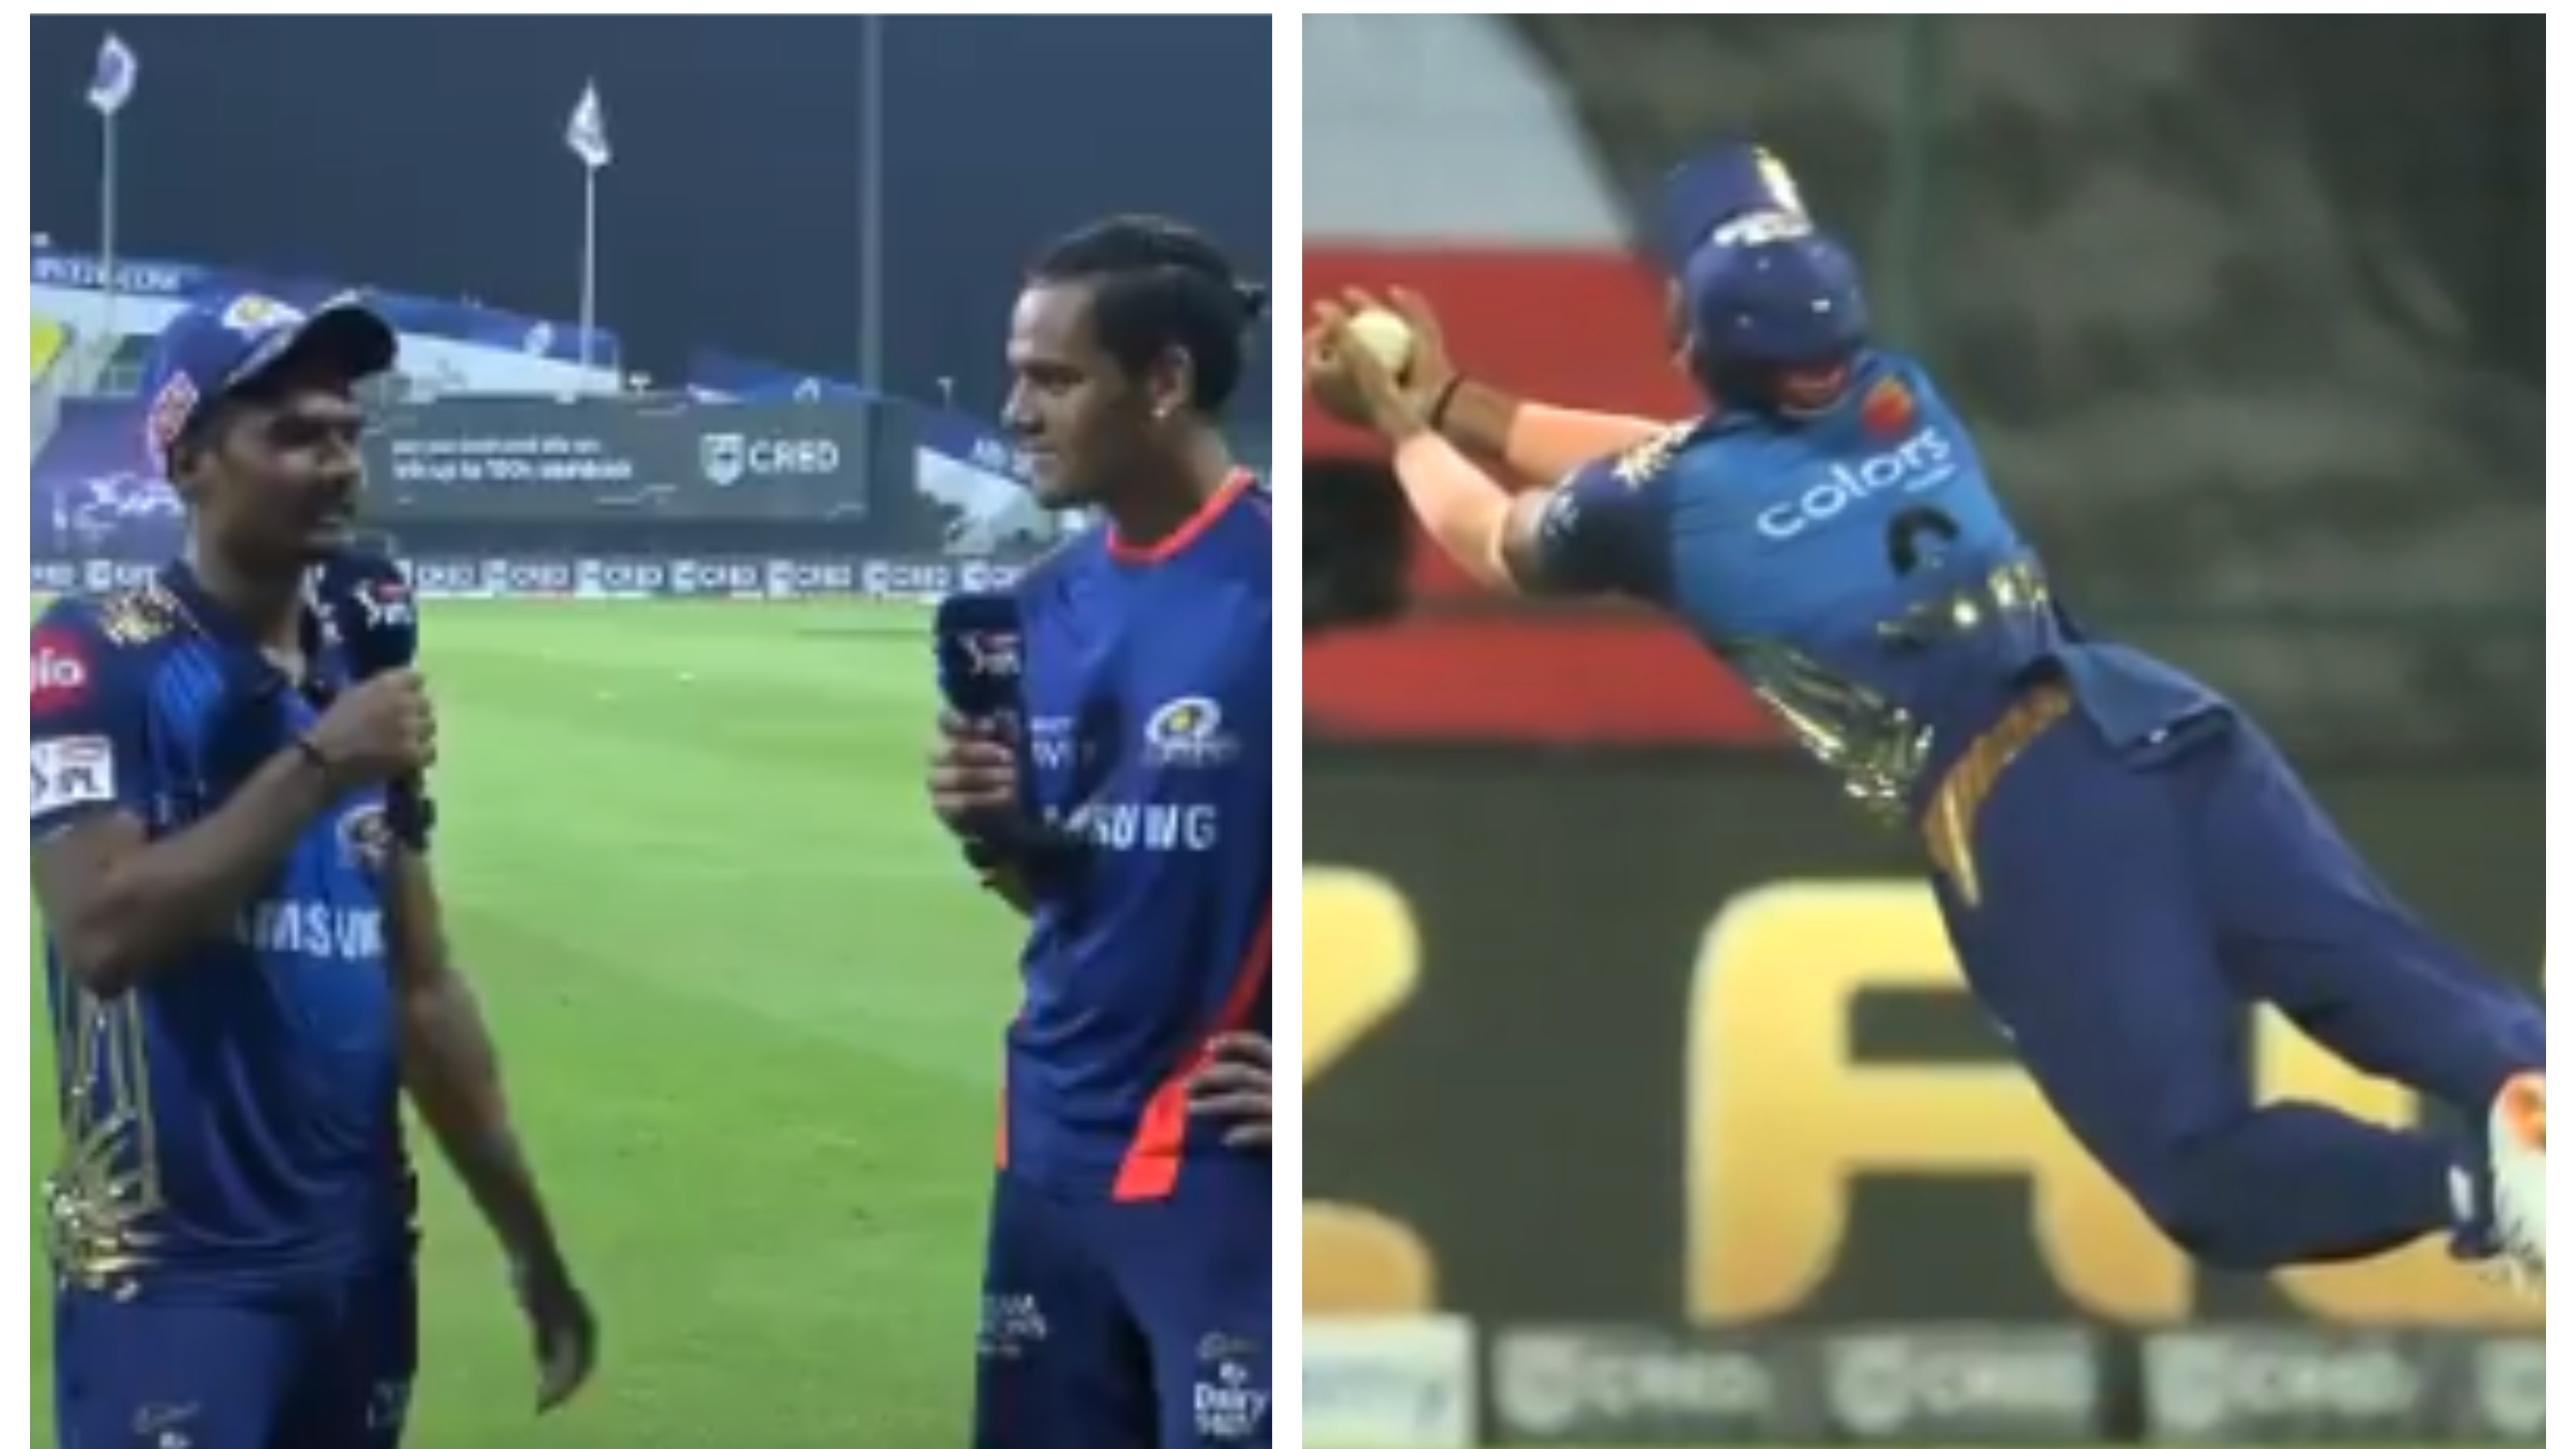 IPL 2020: WATCH – Anukul Roy reflects on his special catch to get rid of Mahipal Lomror